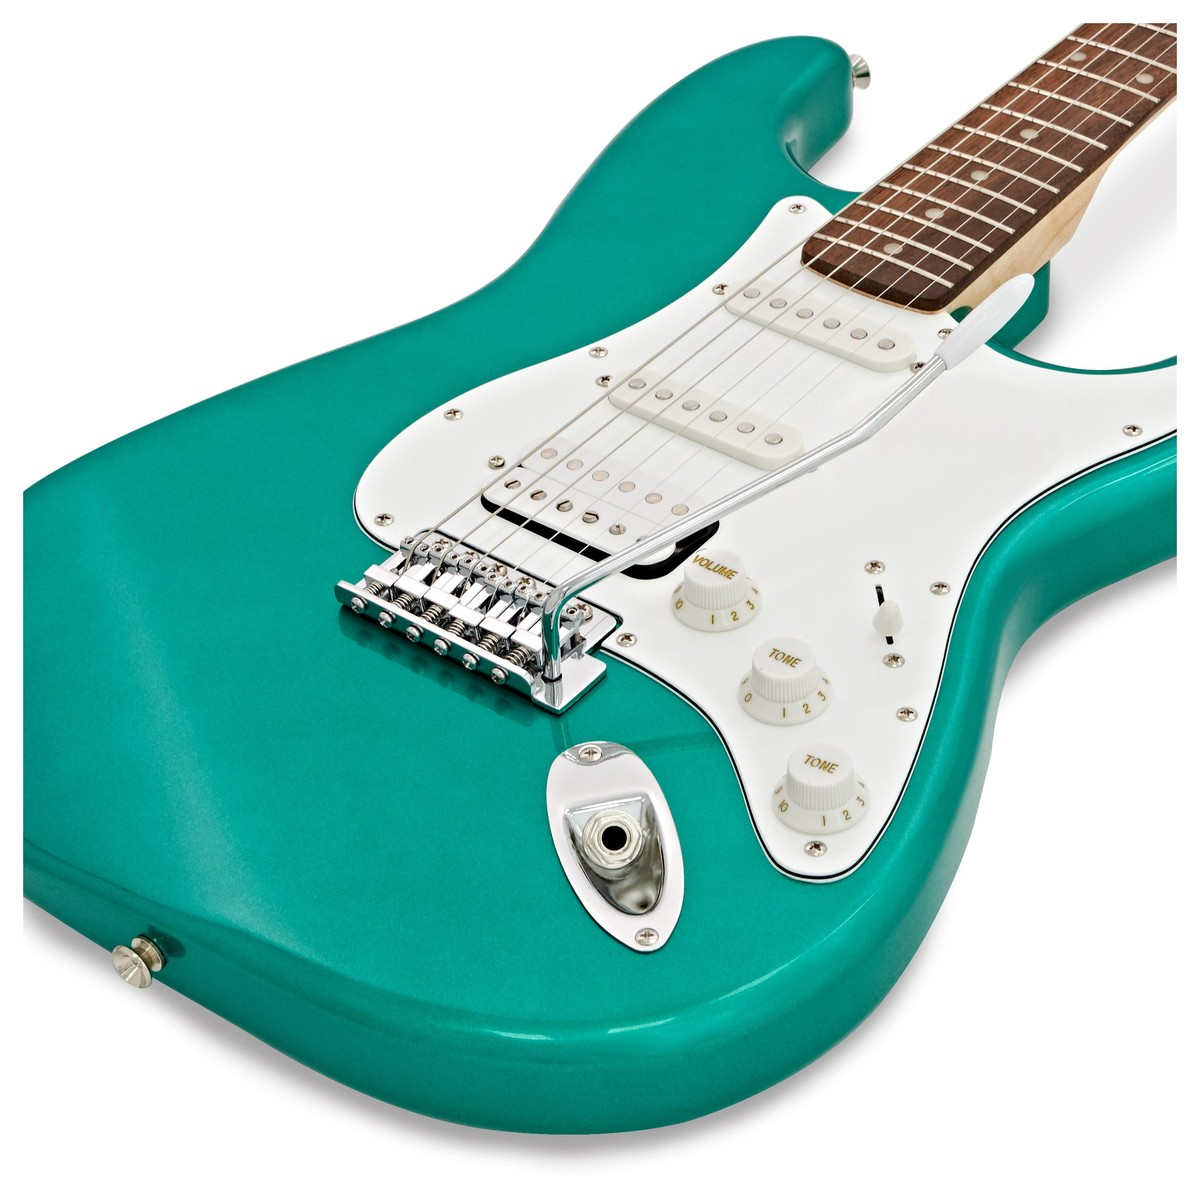 squier affinity stratocaster hss race green at gear4music. Black Bedroom Furniture Sets. Home Design Ideas